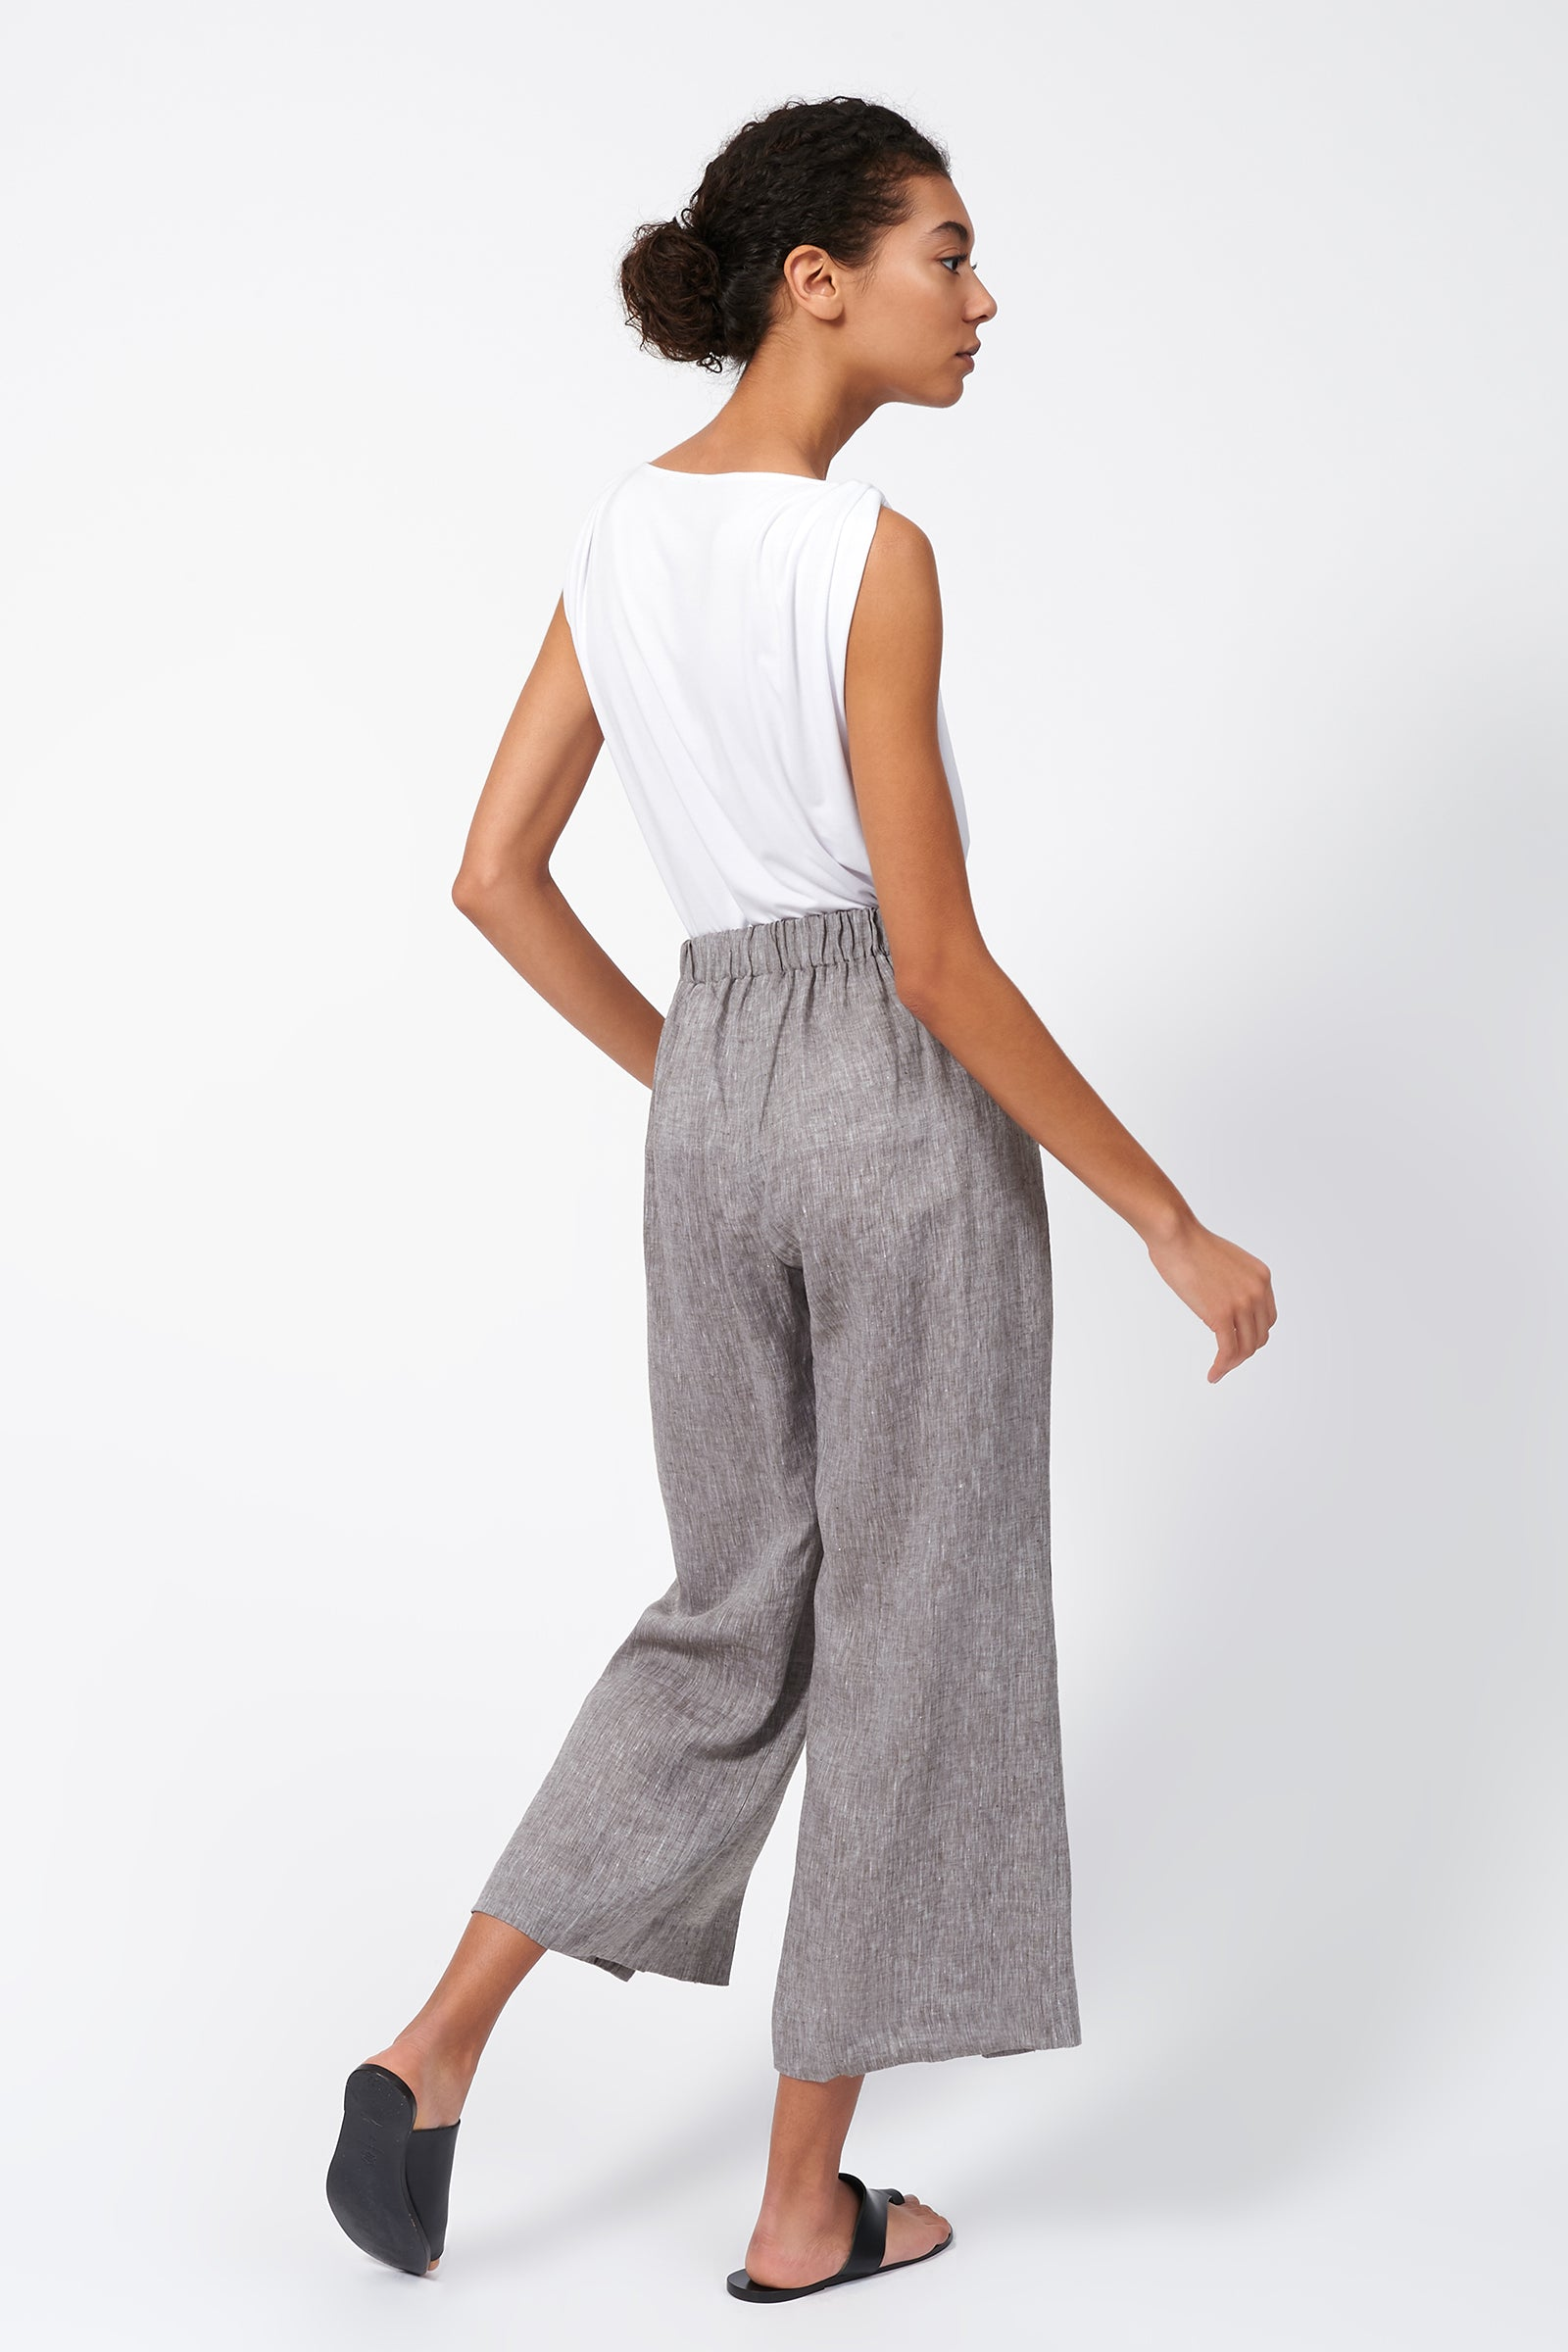 Kal Rieman Linen Side Kick Pant in Brown on Model Full Back View